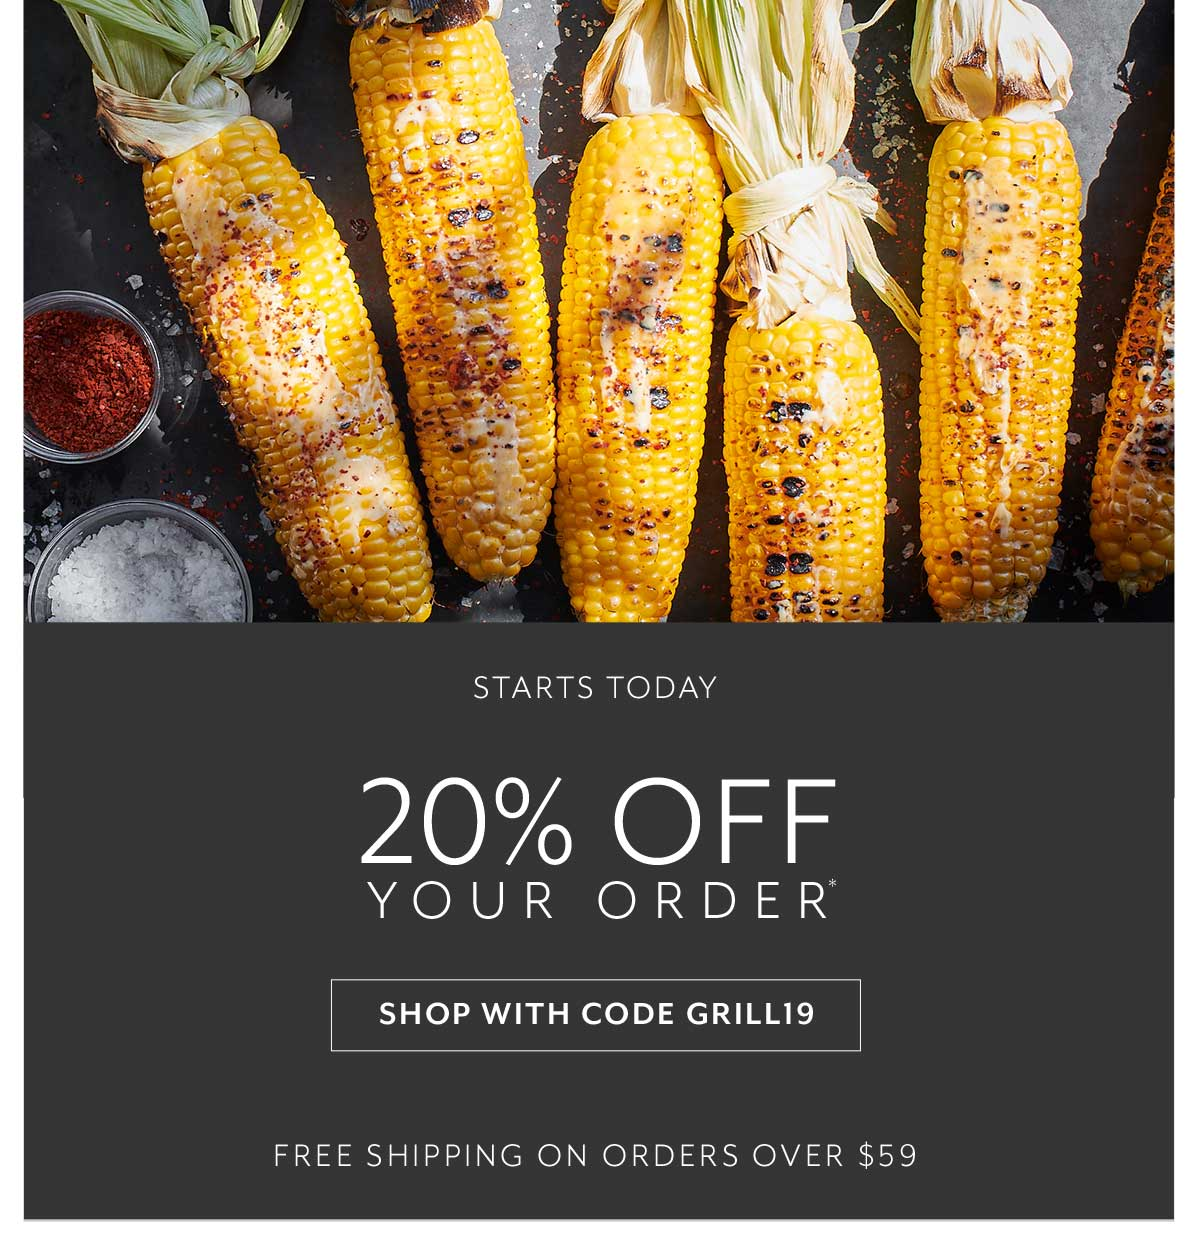 20% off Order Coupon